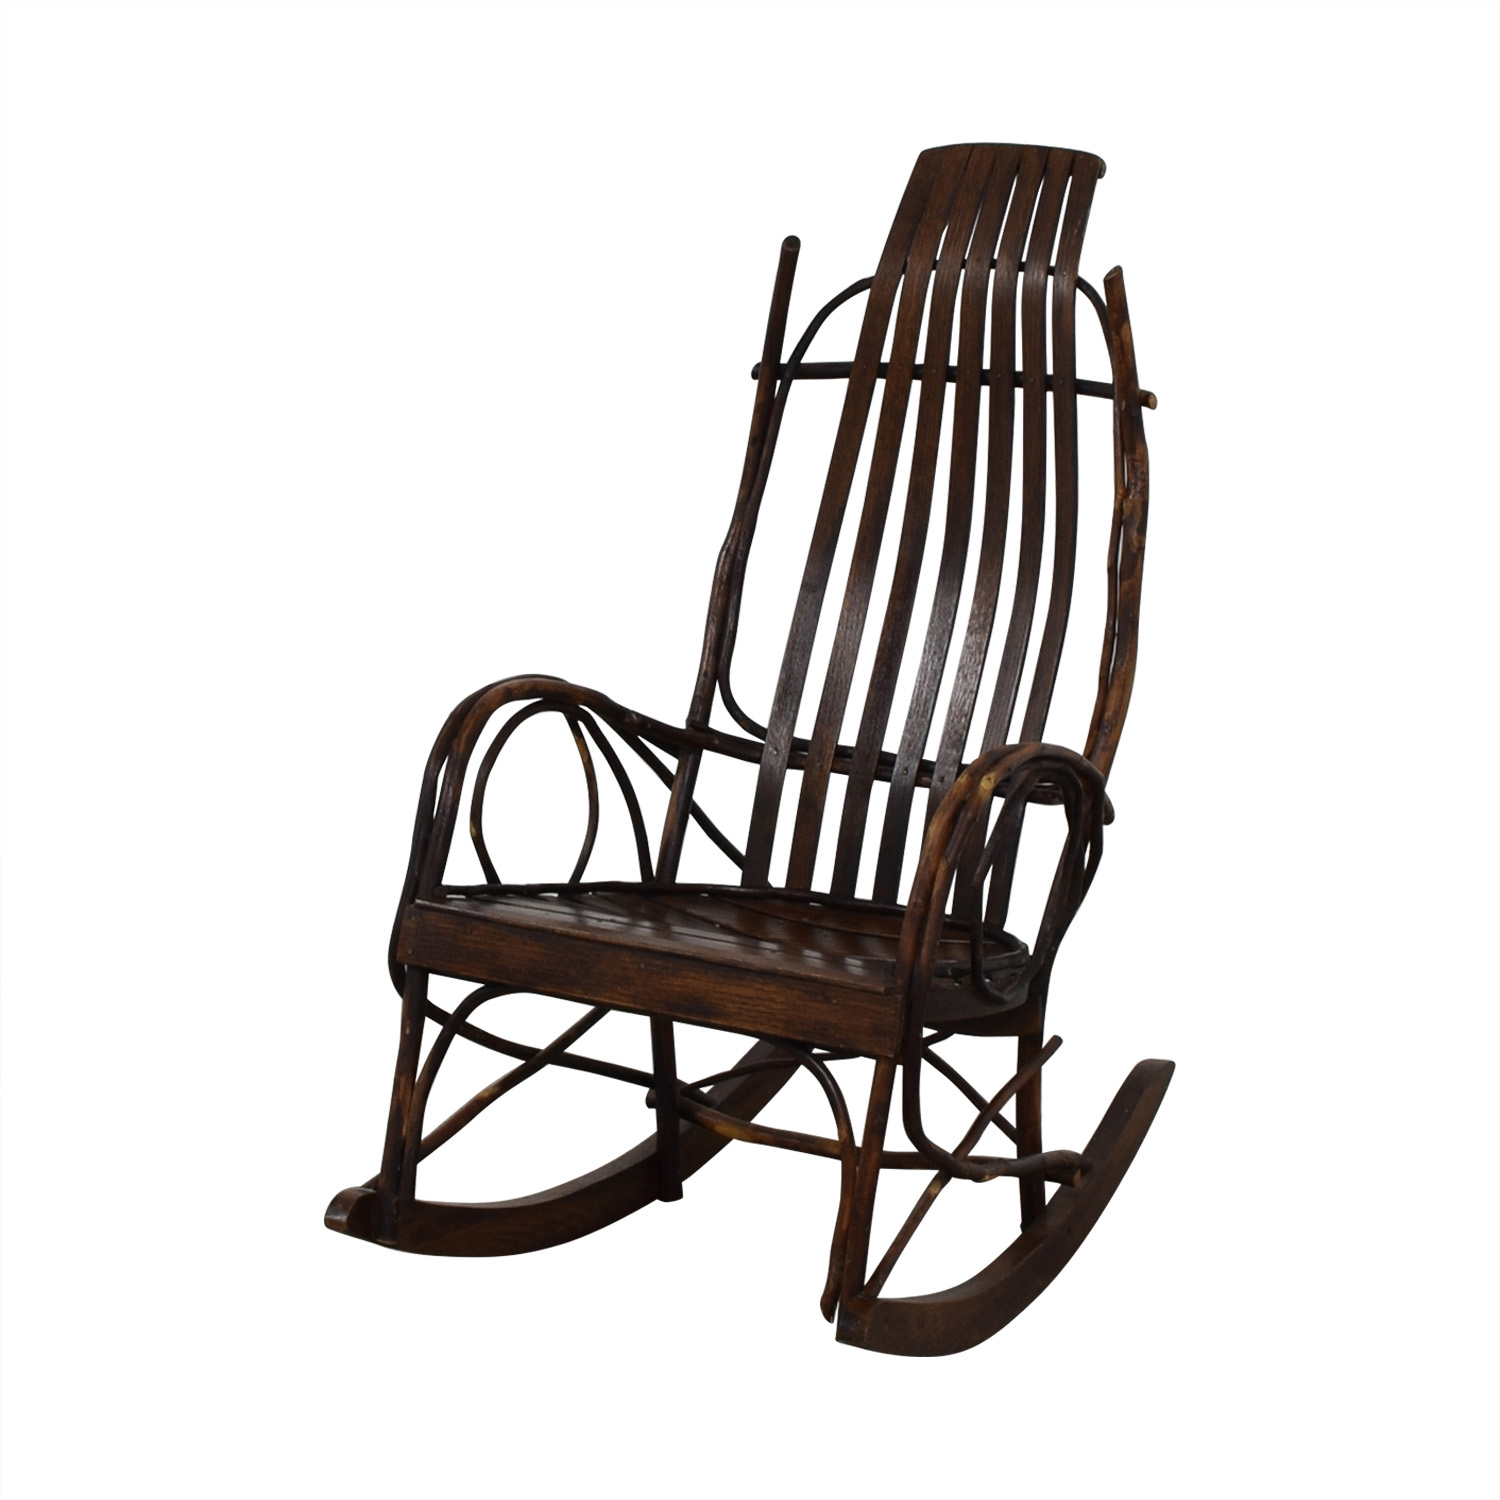 Amish Rocking Chair 80 Off Amish Wood Rocking Chair Chairs